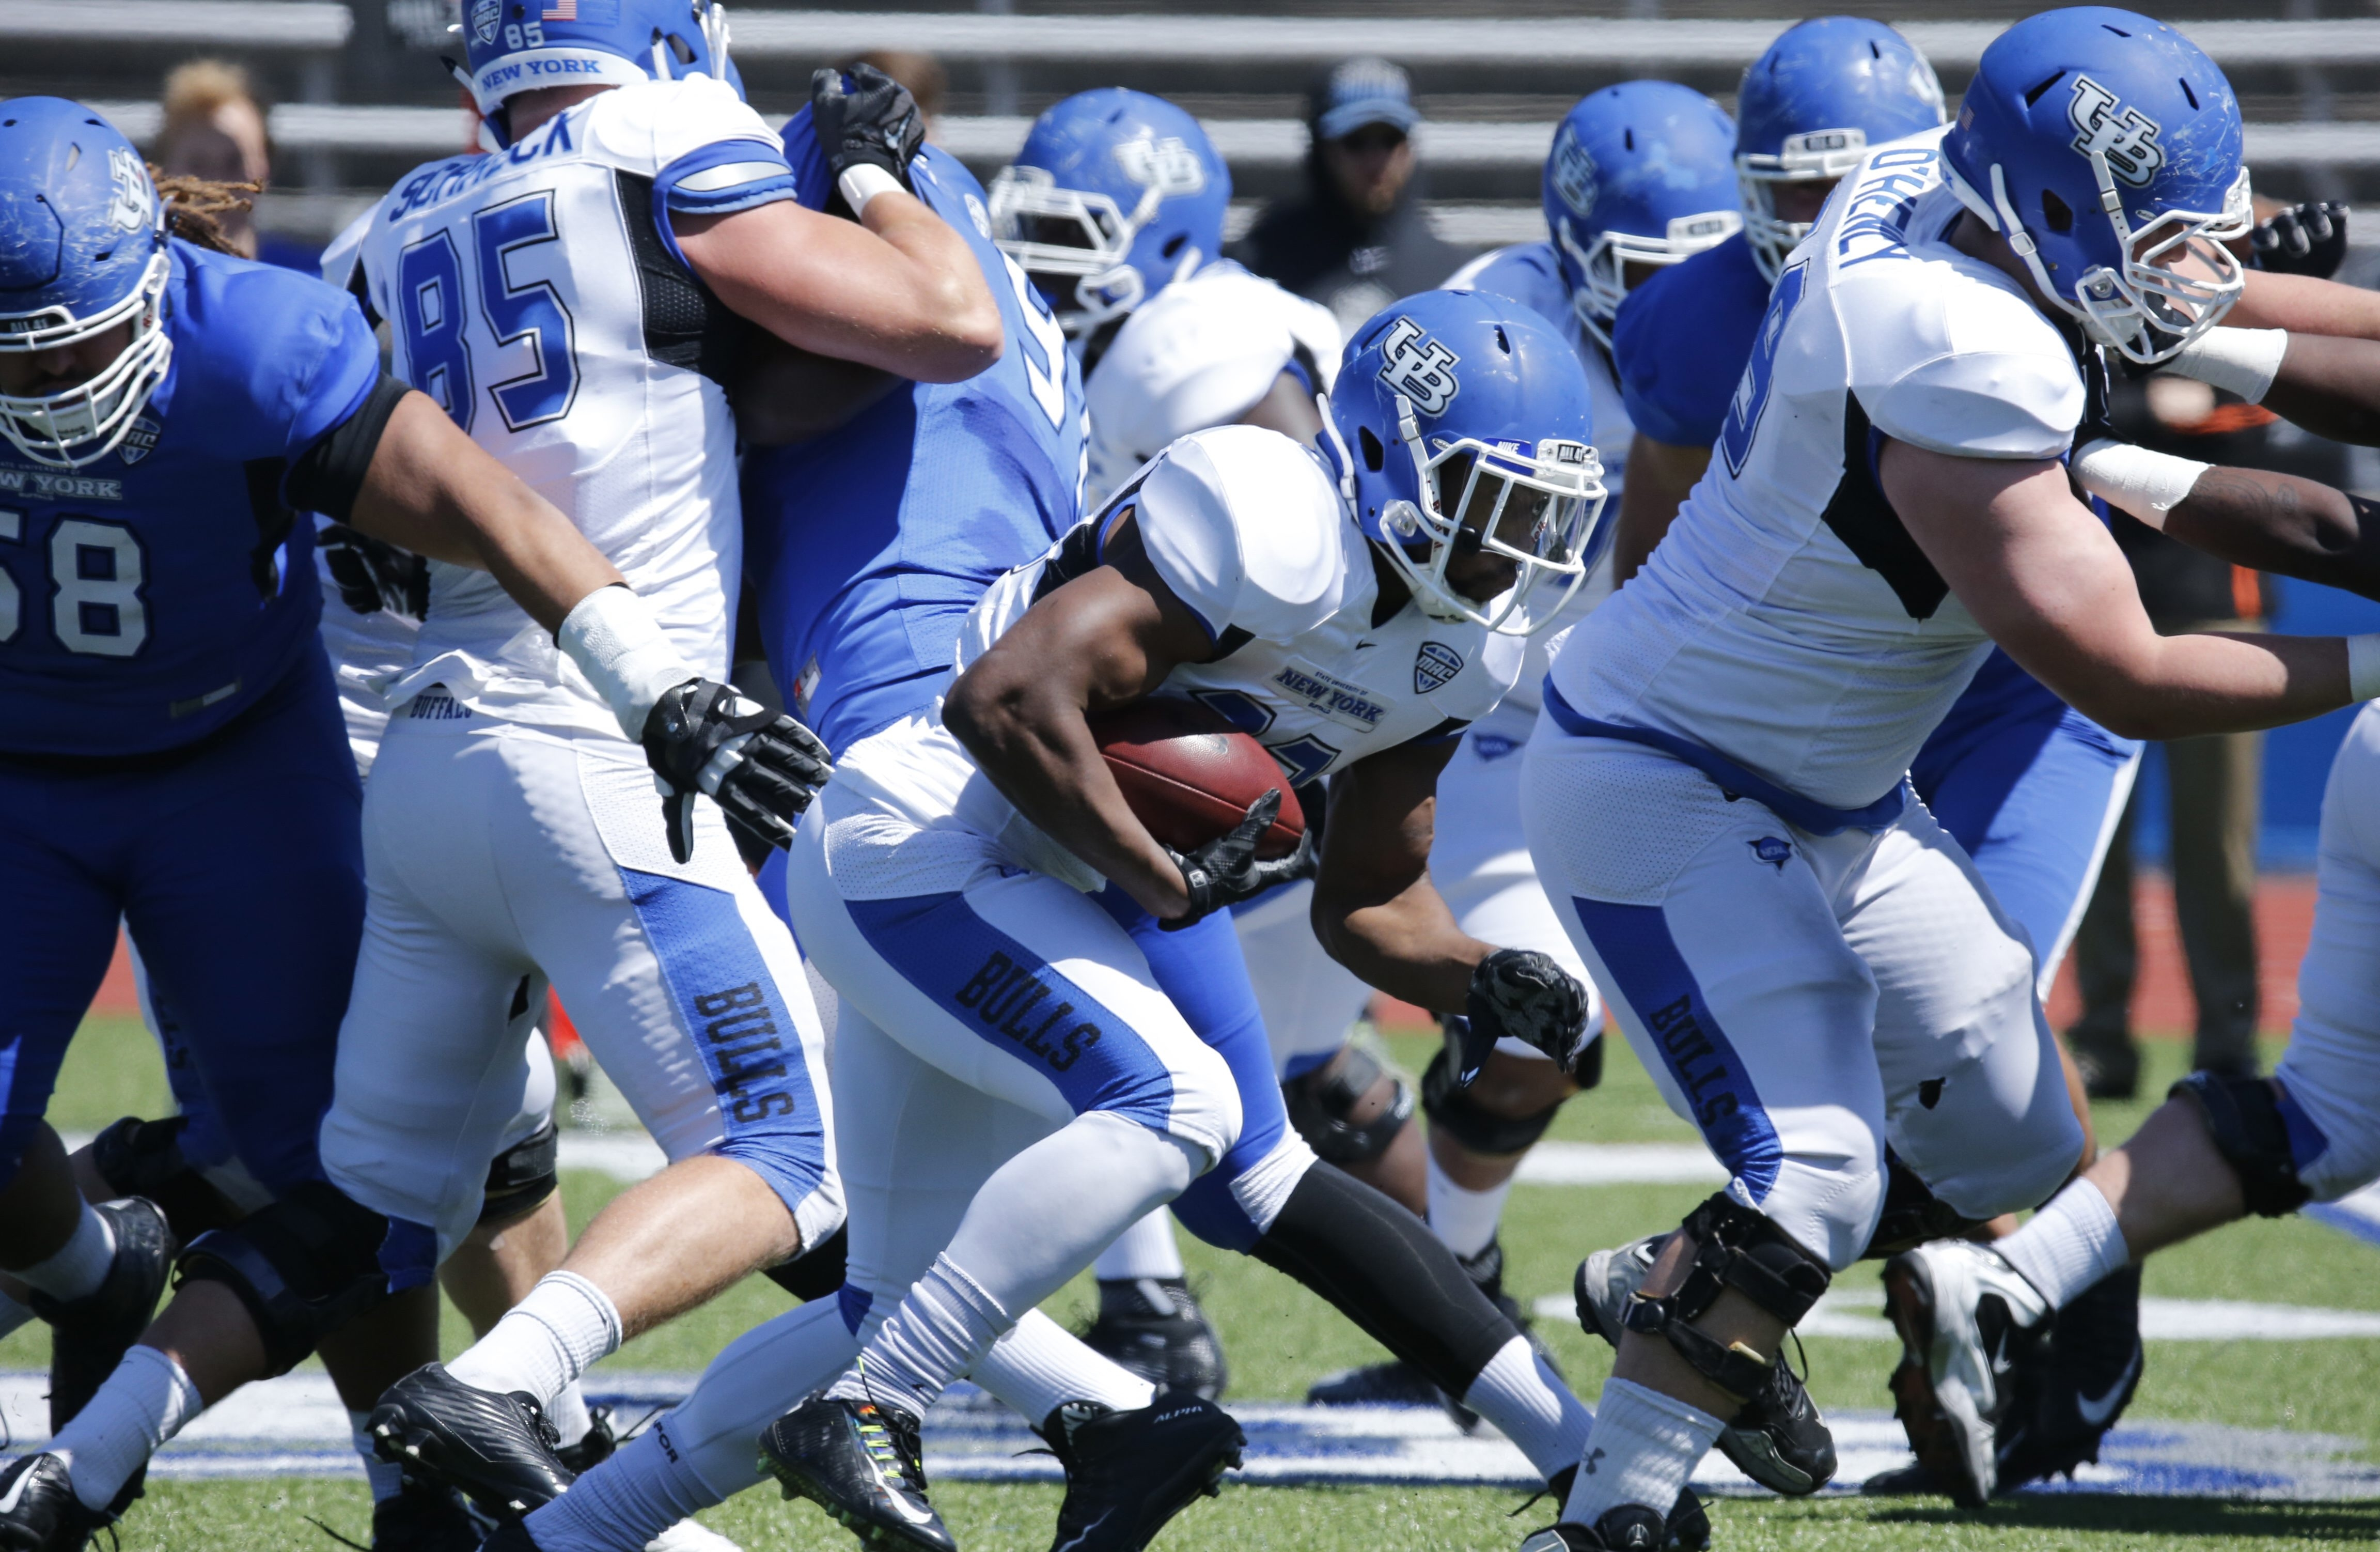 The University at Buffalo spends $7.3 million a year on football, and a total of $29.5 million on all sports.